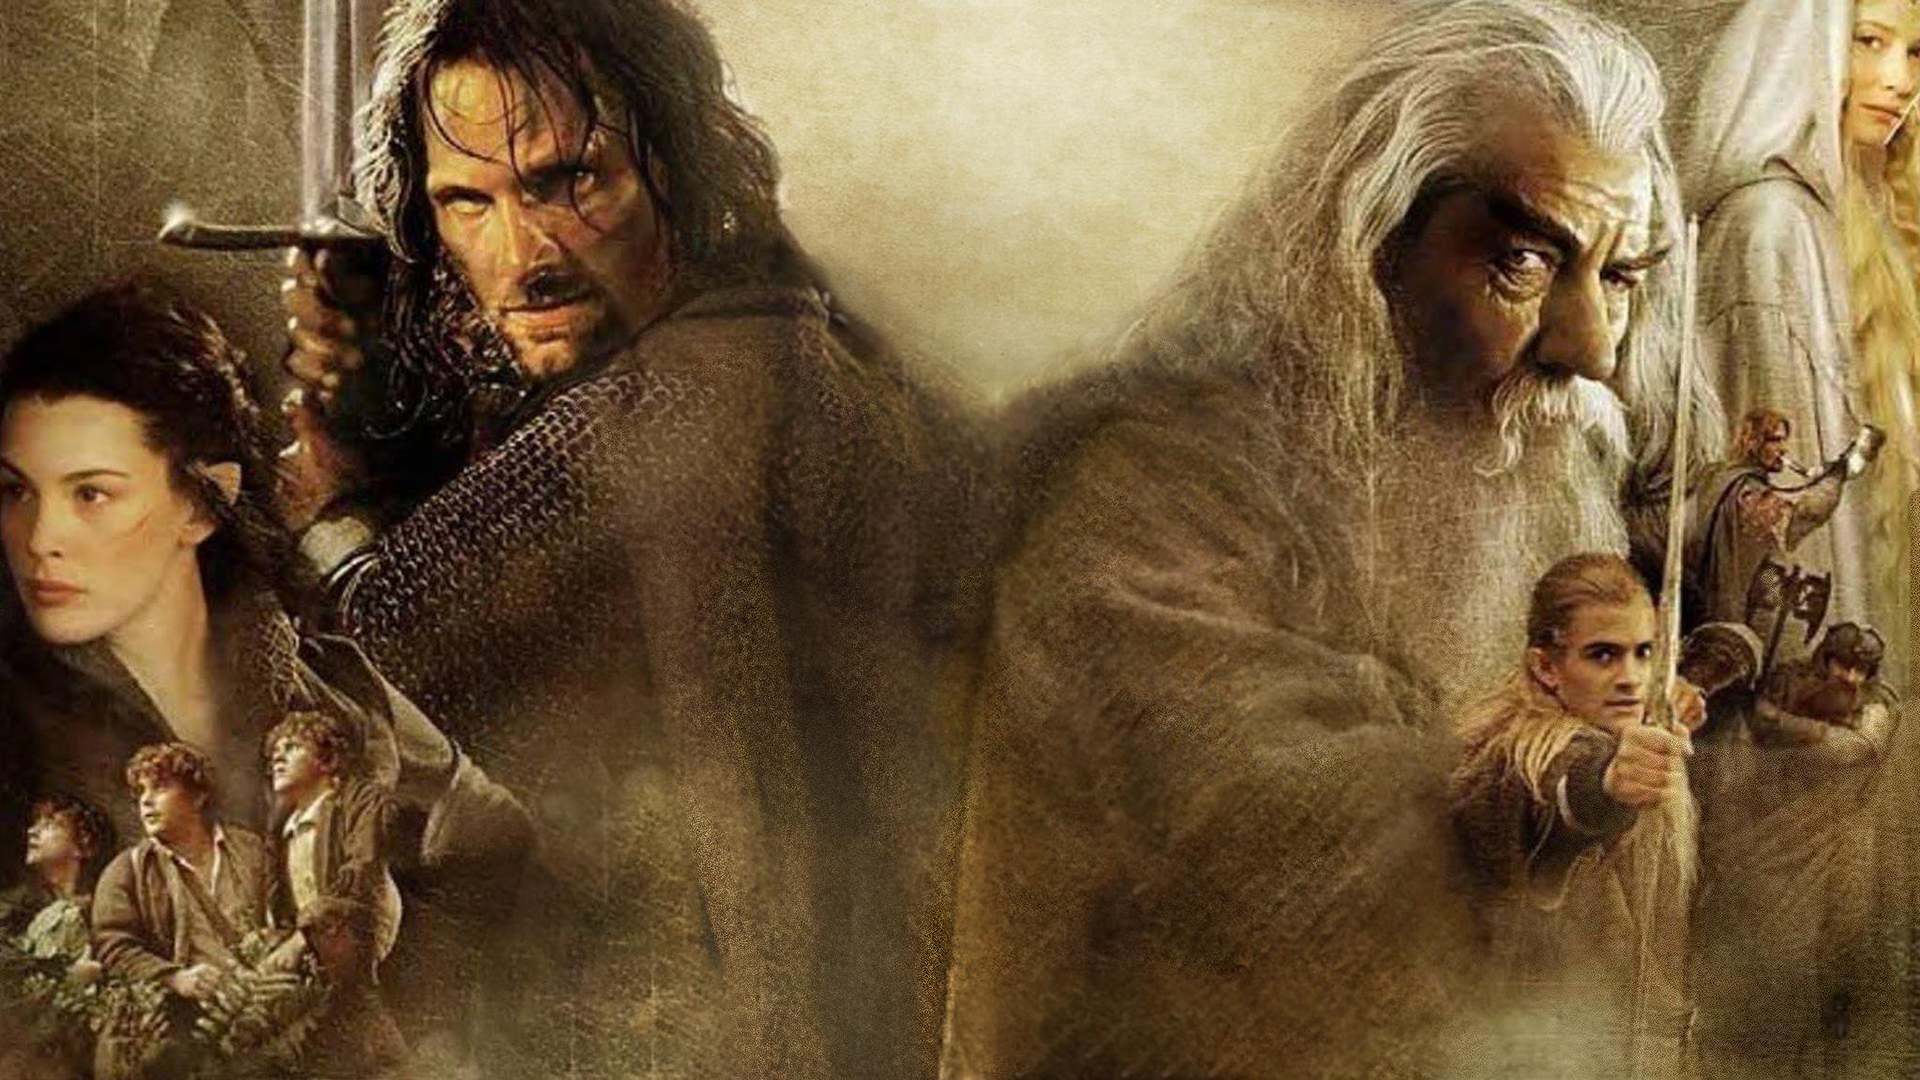 The Lord of the Rings fellowship poster. Virtual background to use on Zoom, Microsoft Teams, Skype, Google Meet, WebEx or any other compatible app.